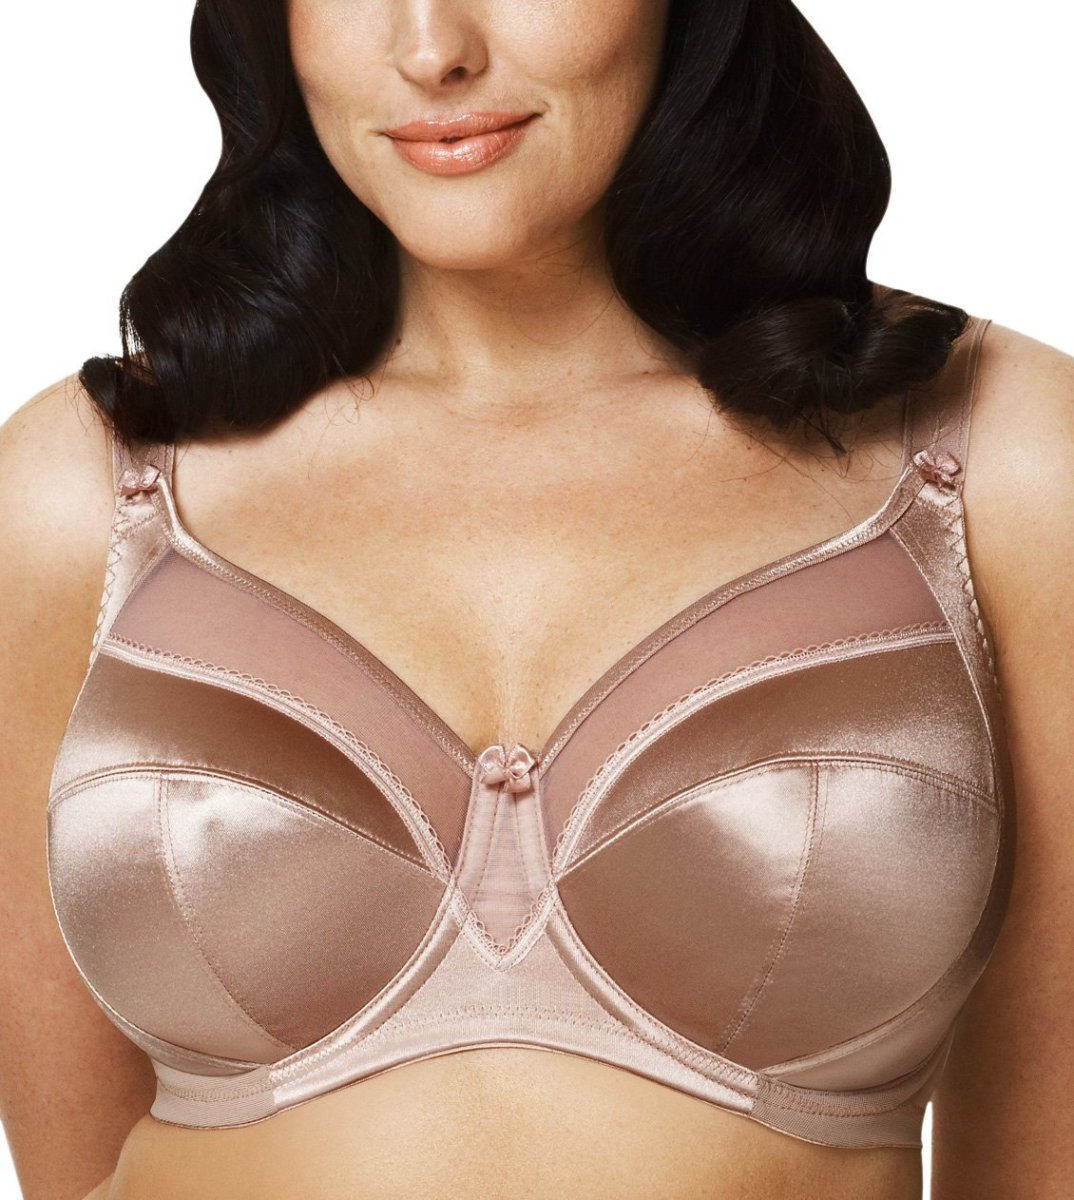 Best Bras for Large Breasts: Top Three Bras for Full-Figured Women